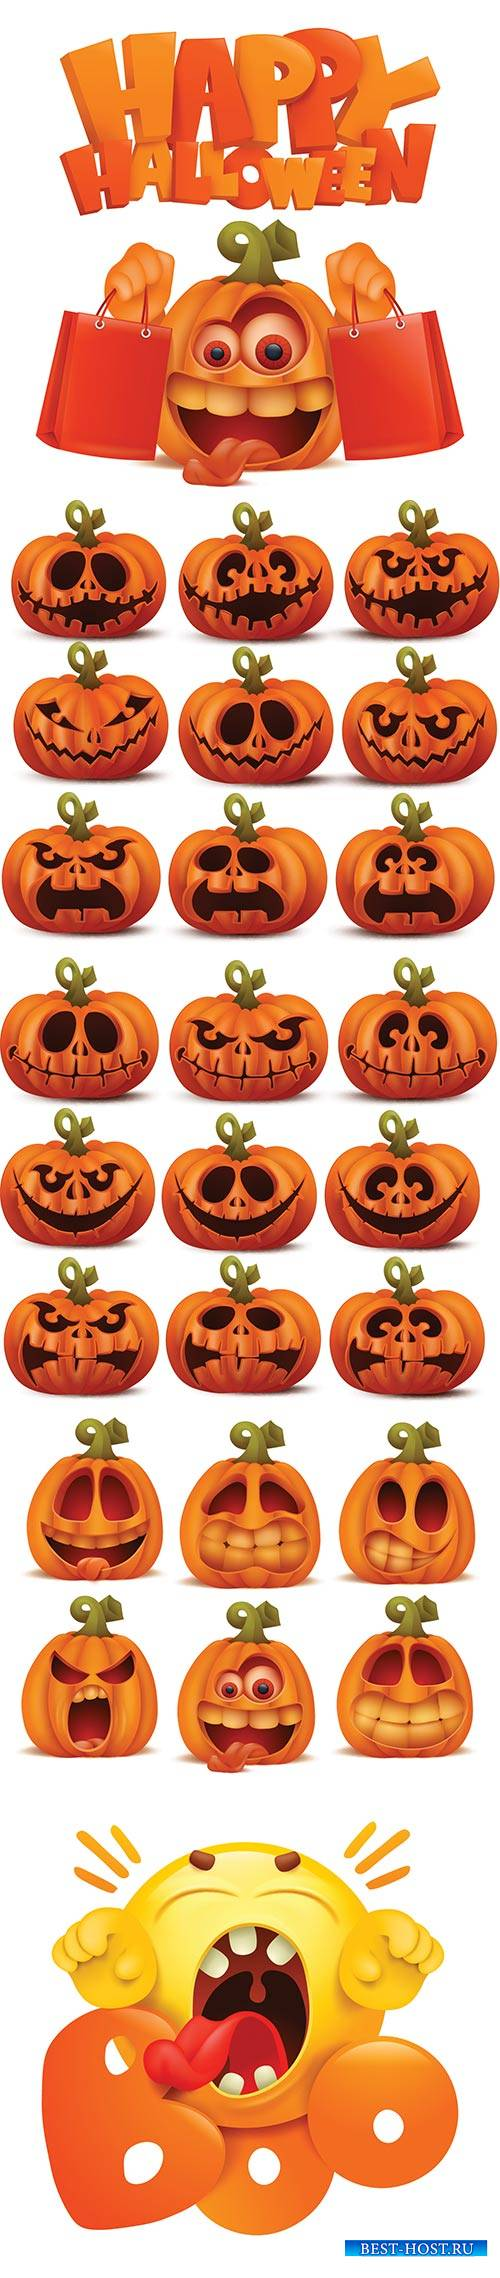 Halloween illustration set in vector